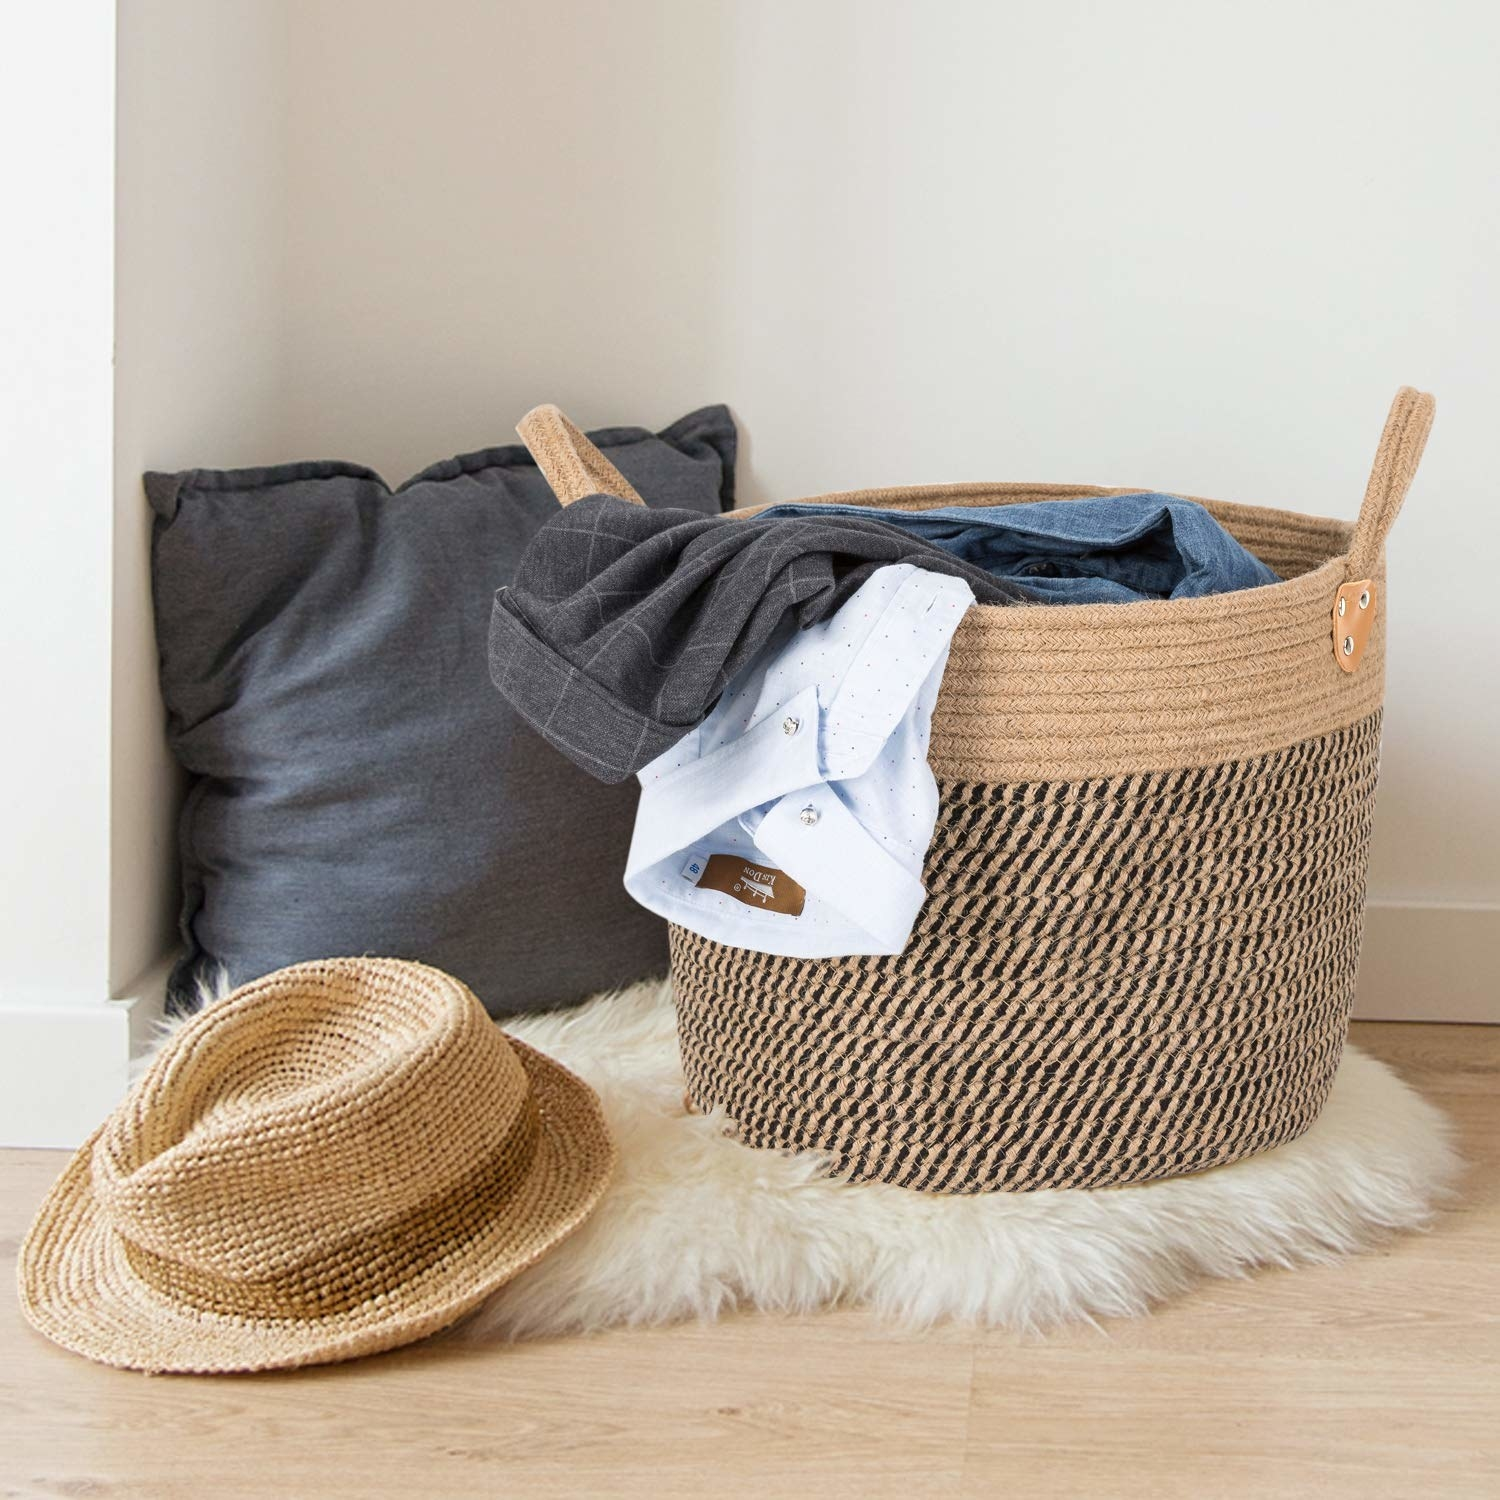 the jute basket with dirty clothes in it